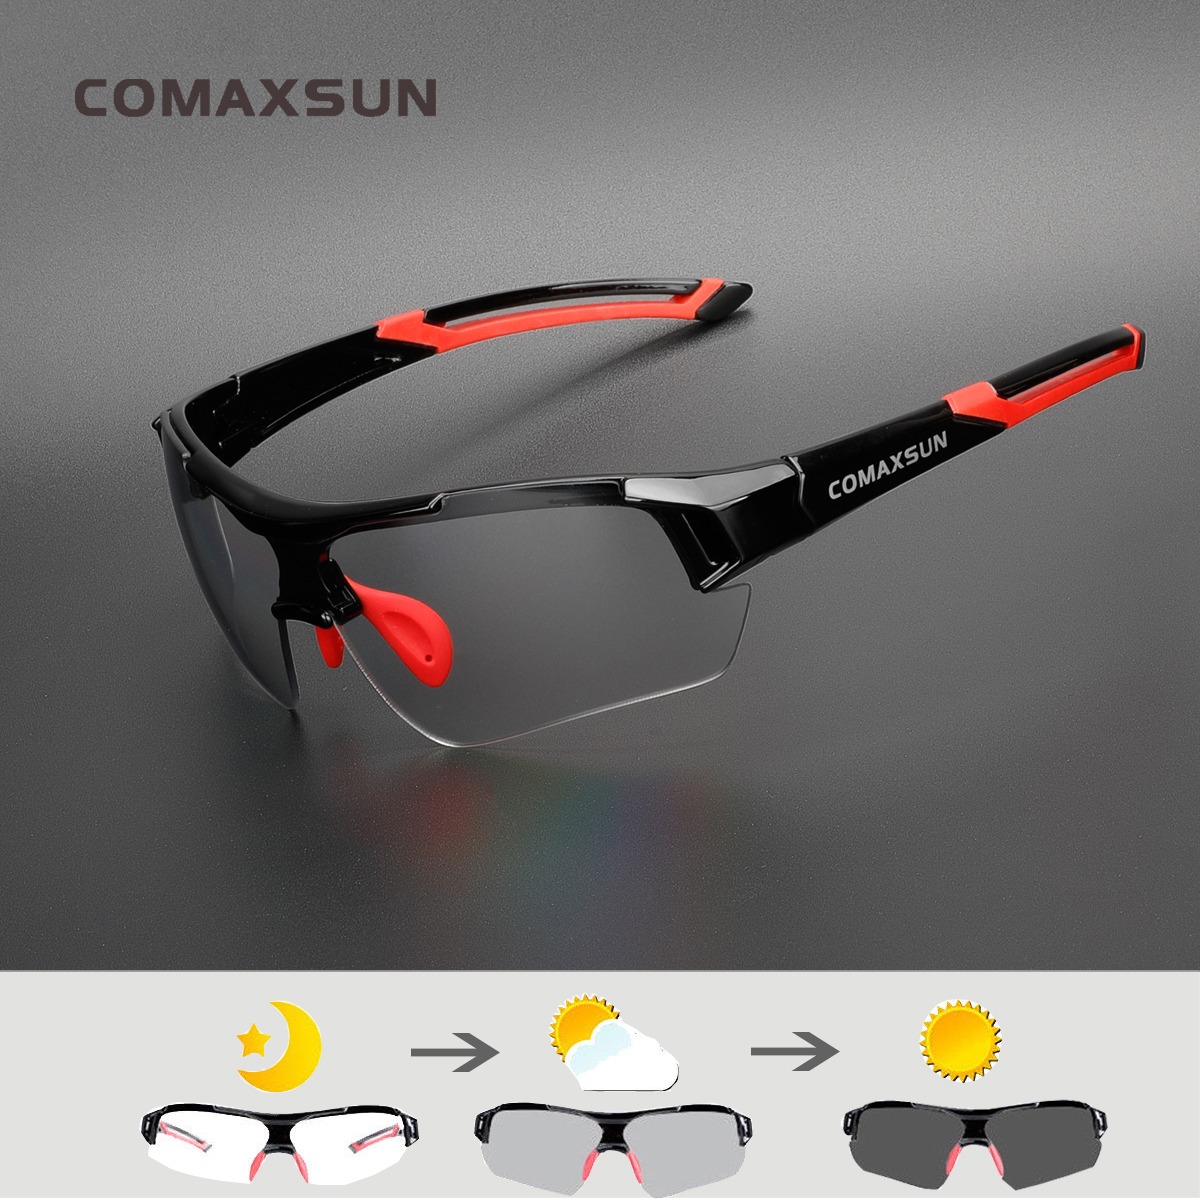 COMAXSUN Photochromic Cycling Glasses Discoloration Glasses MTB Road Bike Sport Sunglasses Bike Eyewear Anti-UV Bicycle Goggles(China)